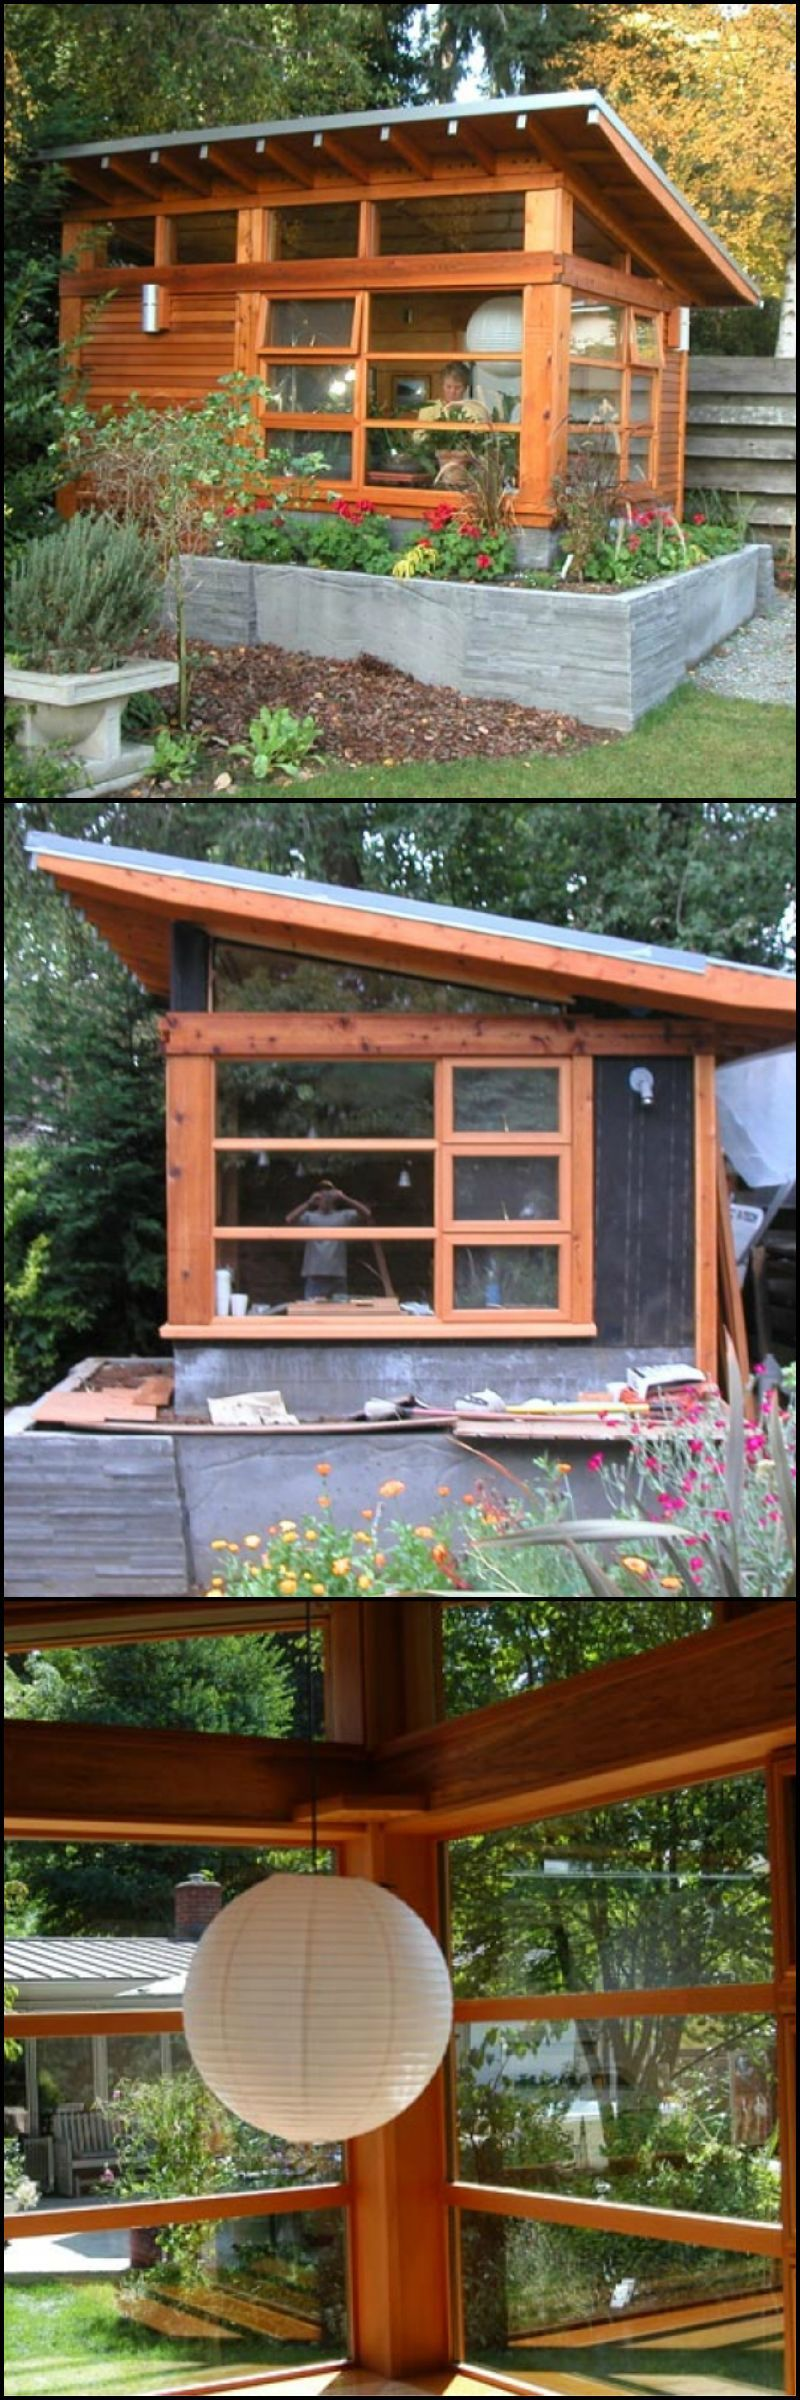 Framing A 10x10 Room: The Designer Who Imagined And Built This Structure Had